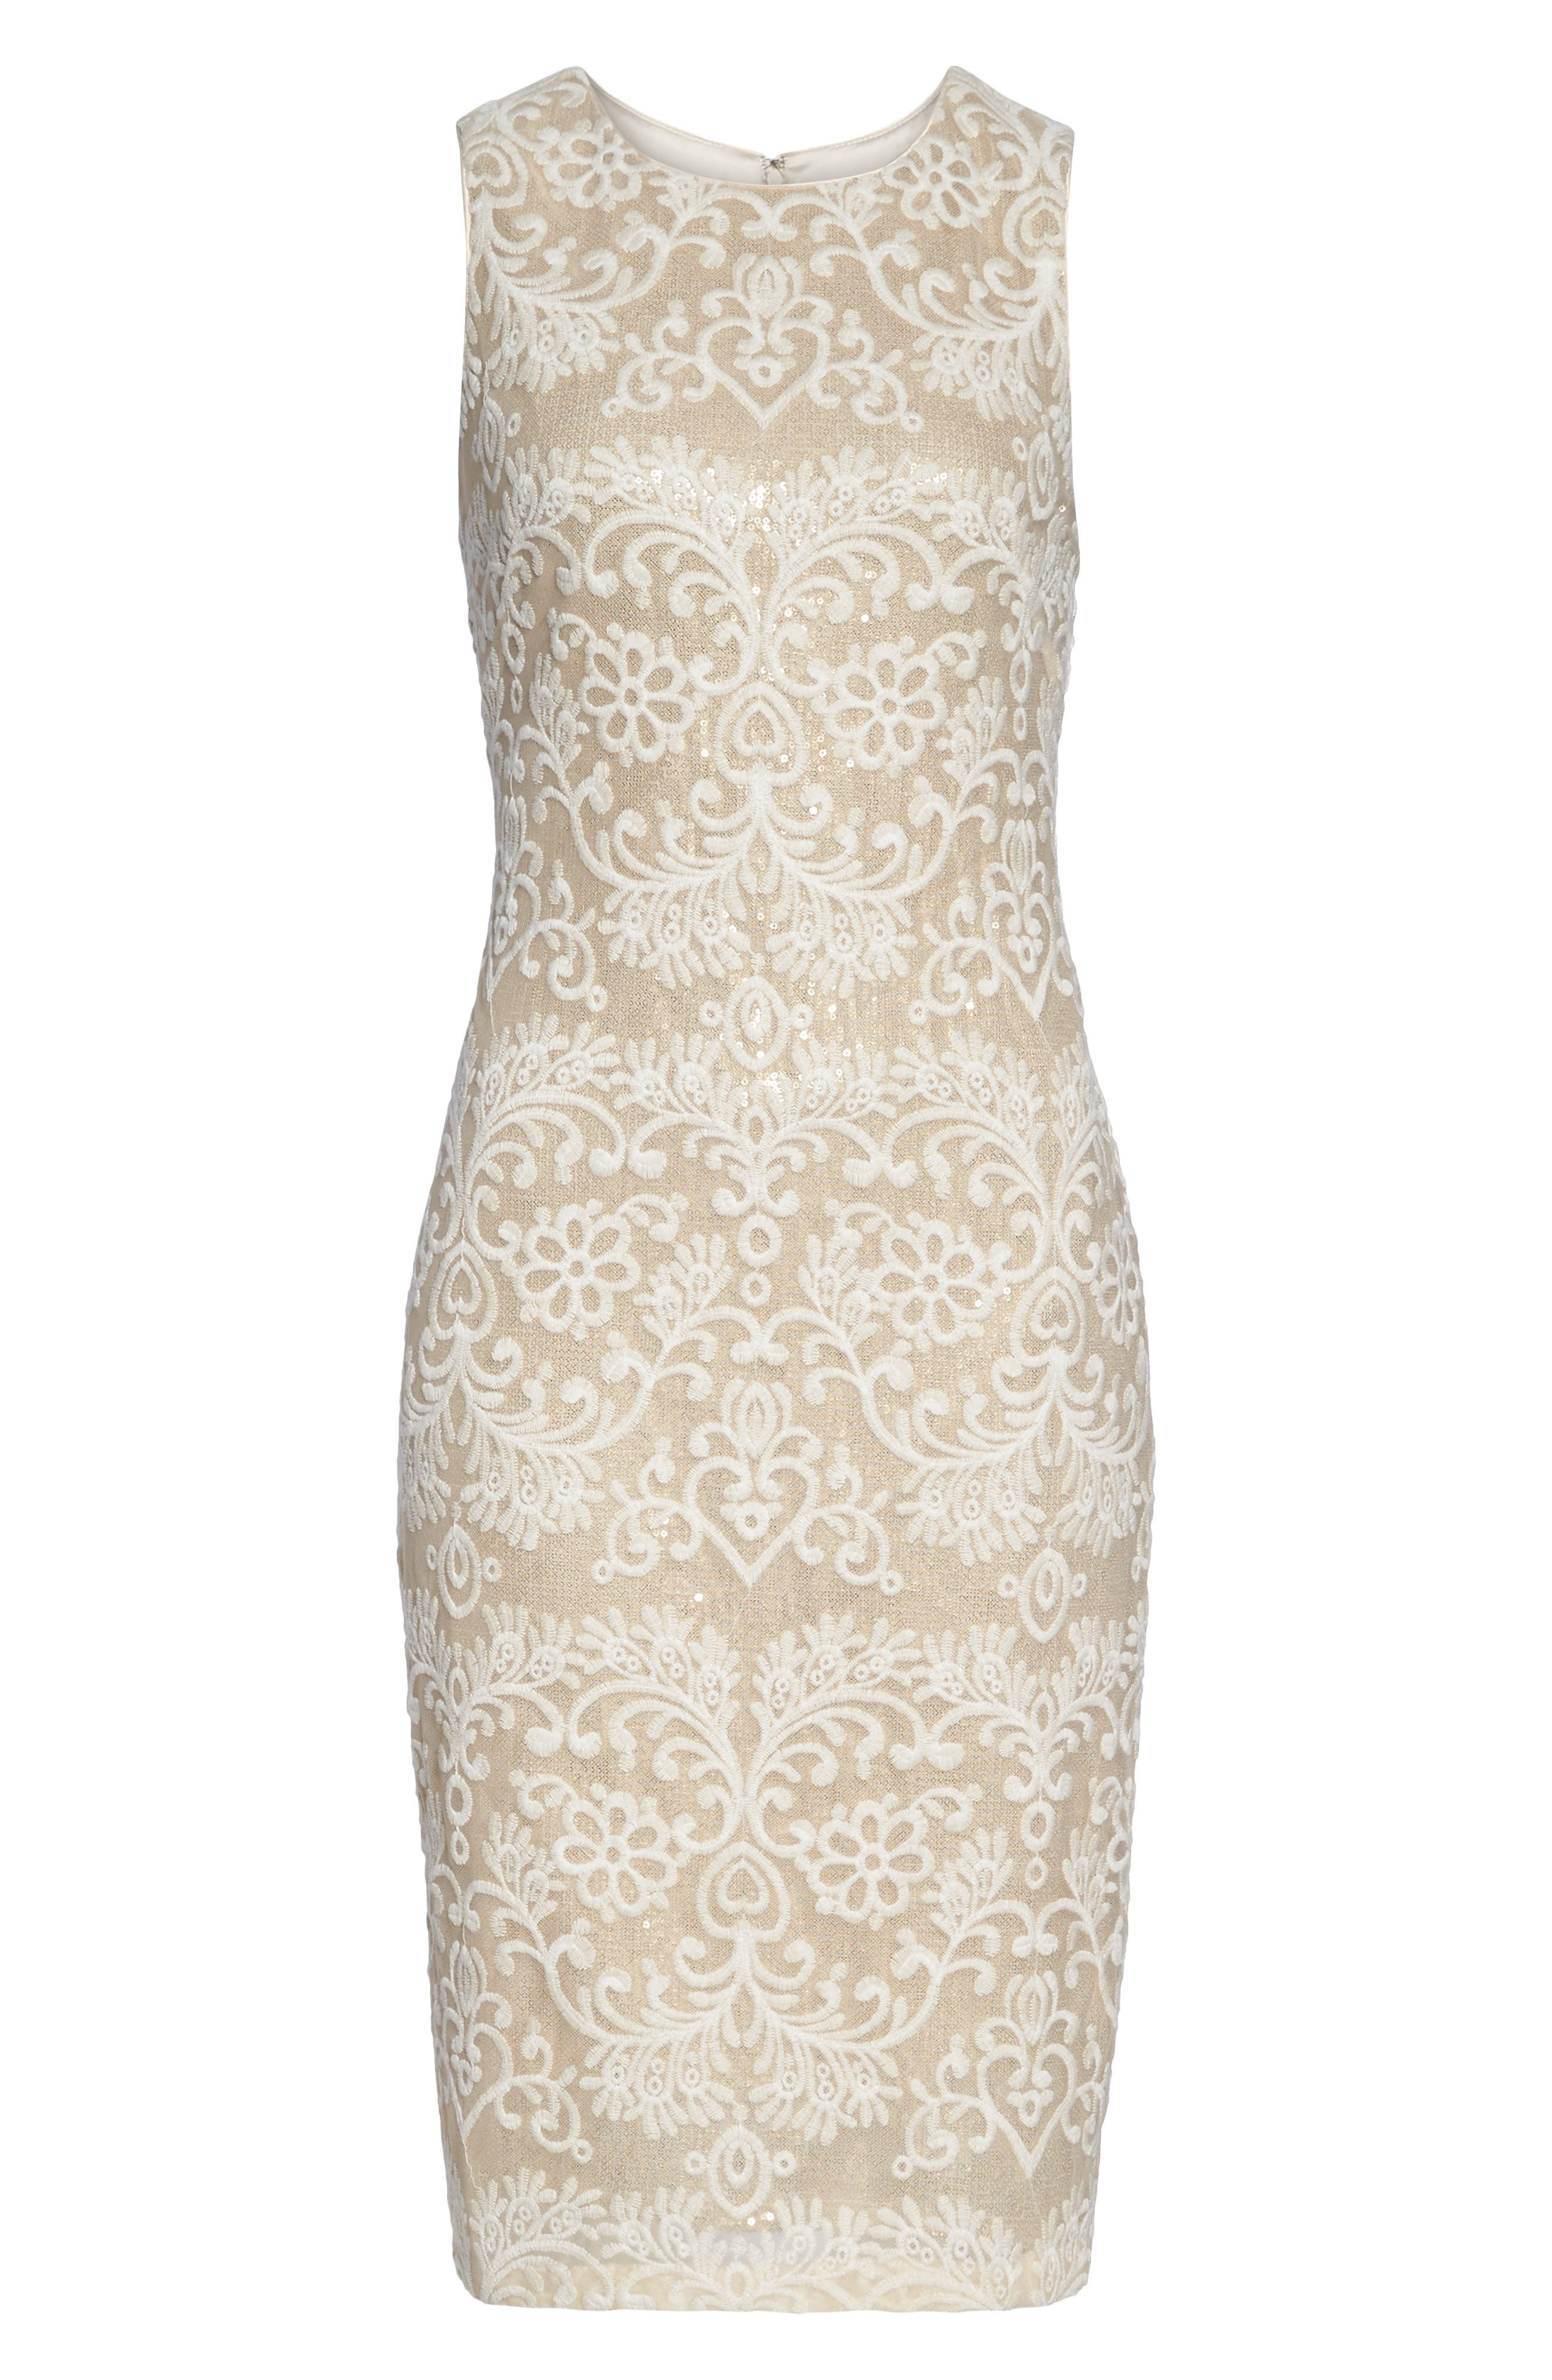 Embroidered Sequin Mesh Sheath Dress,                             Alternate thumbnail 6, color,                             Ivory/ Gold